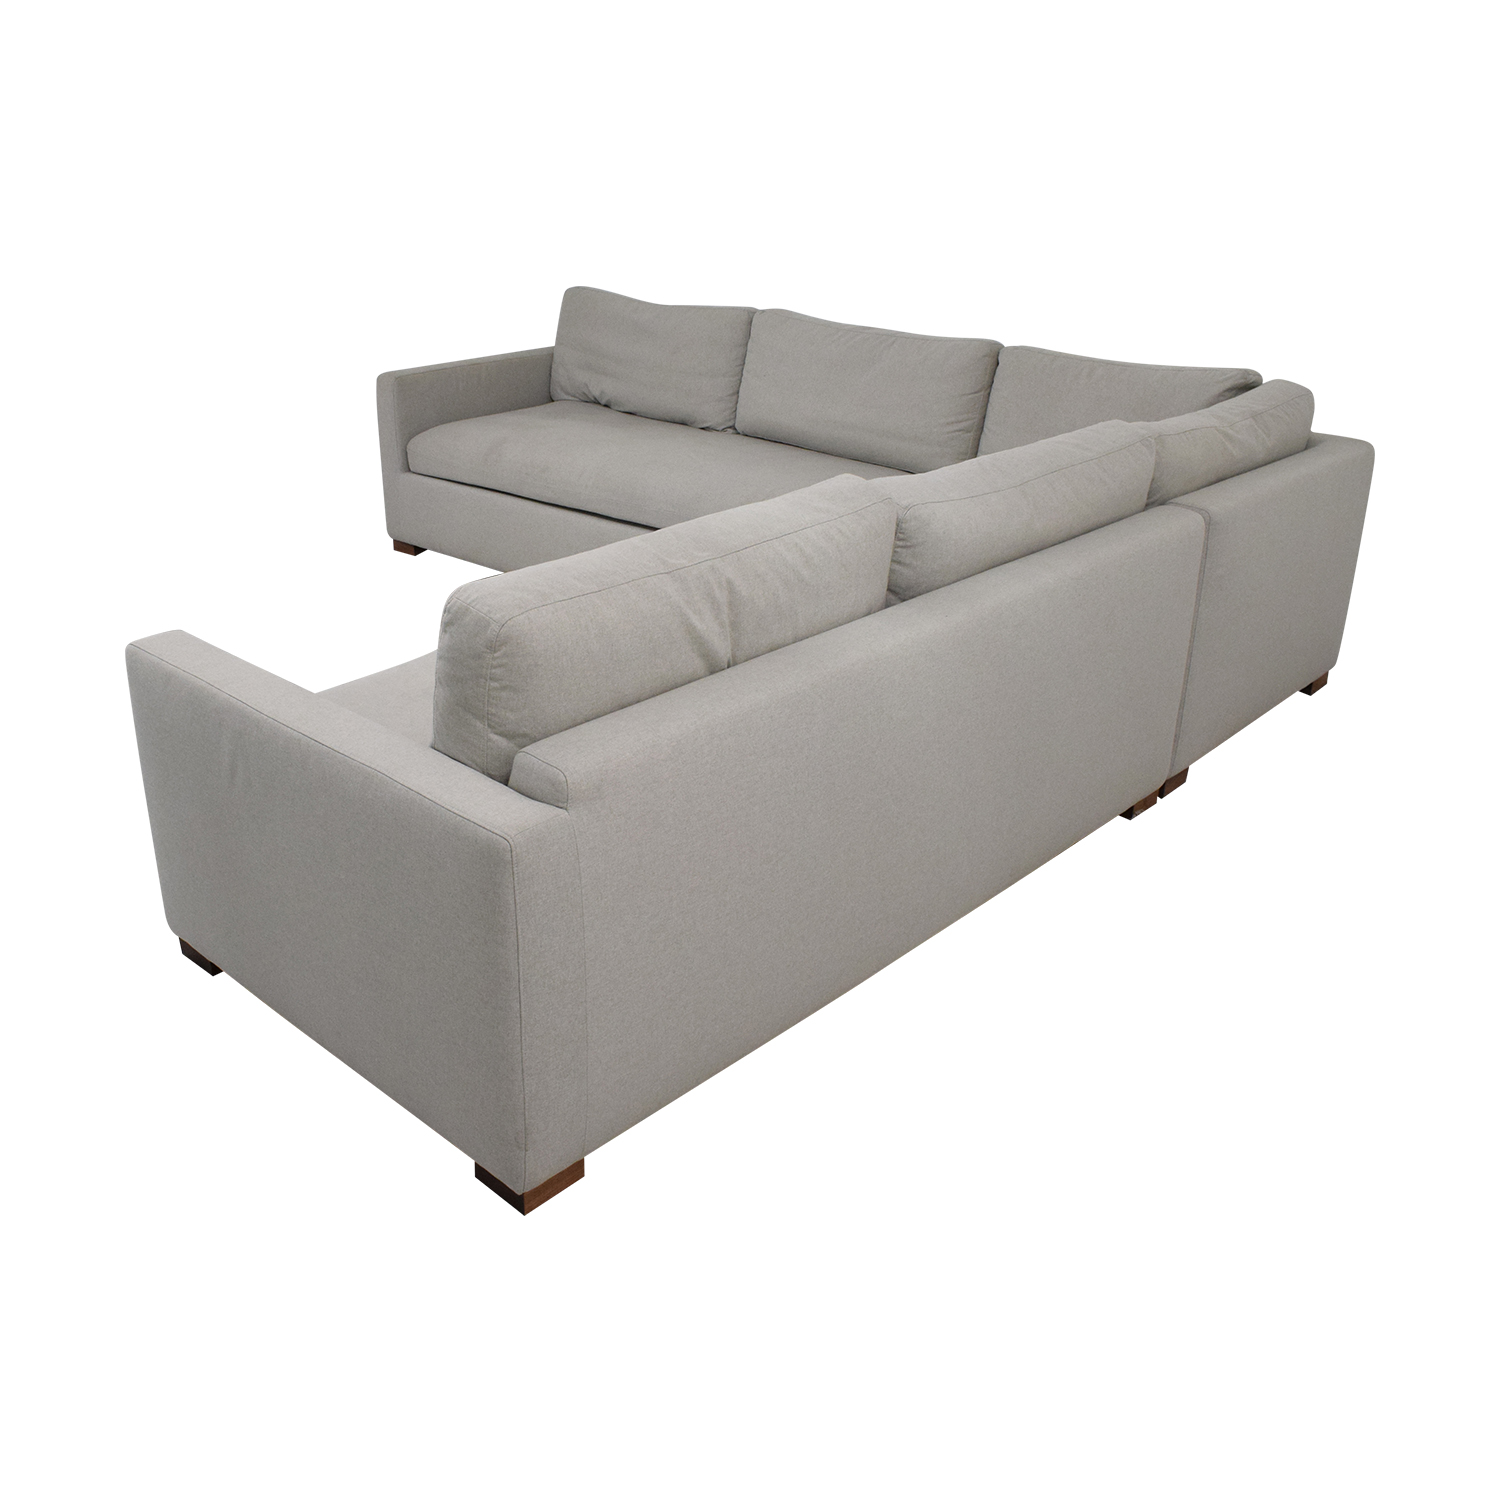 Interiror Define Charly Corner Sectional Sofa / Sectionals